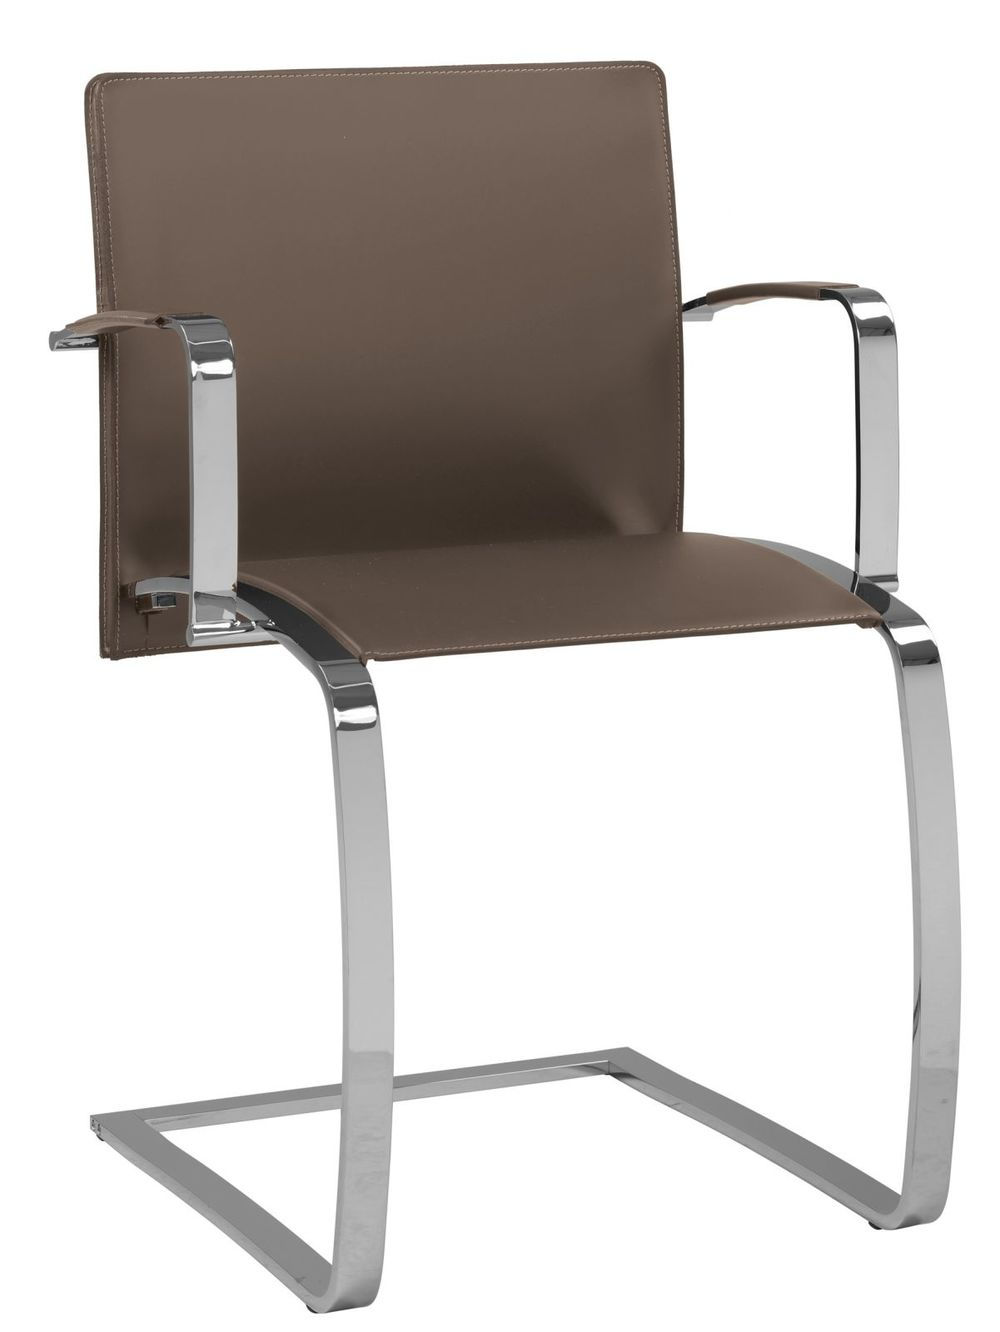 MDC 103 Modern Dining Chairs